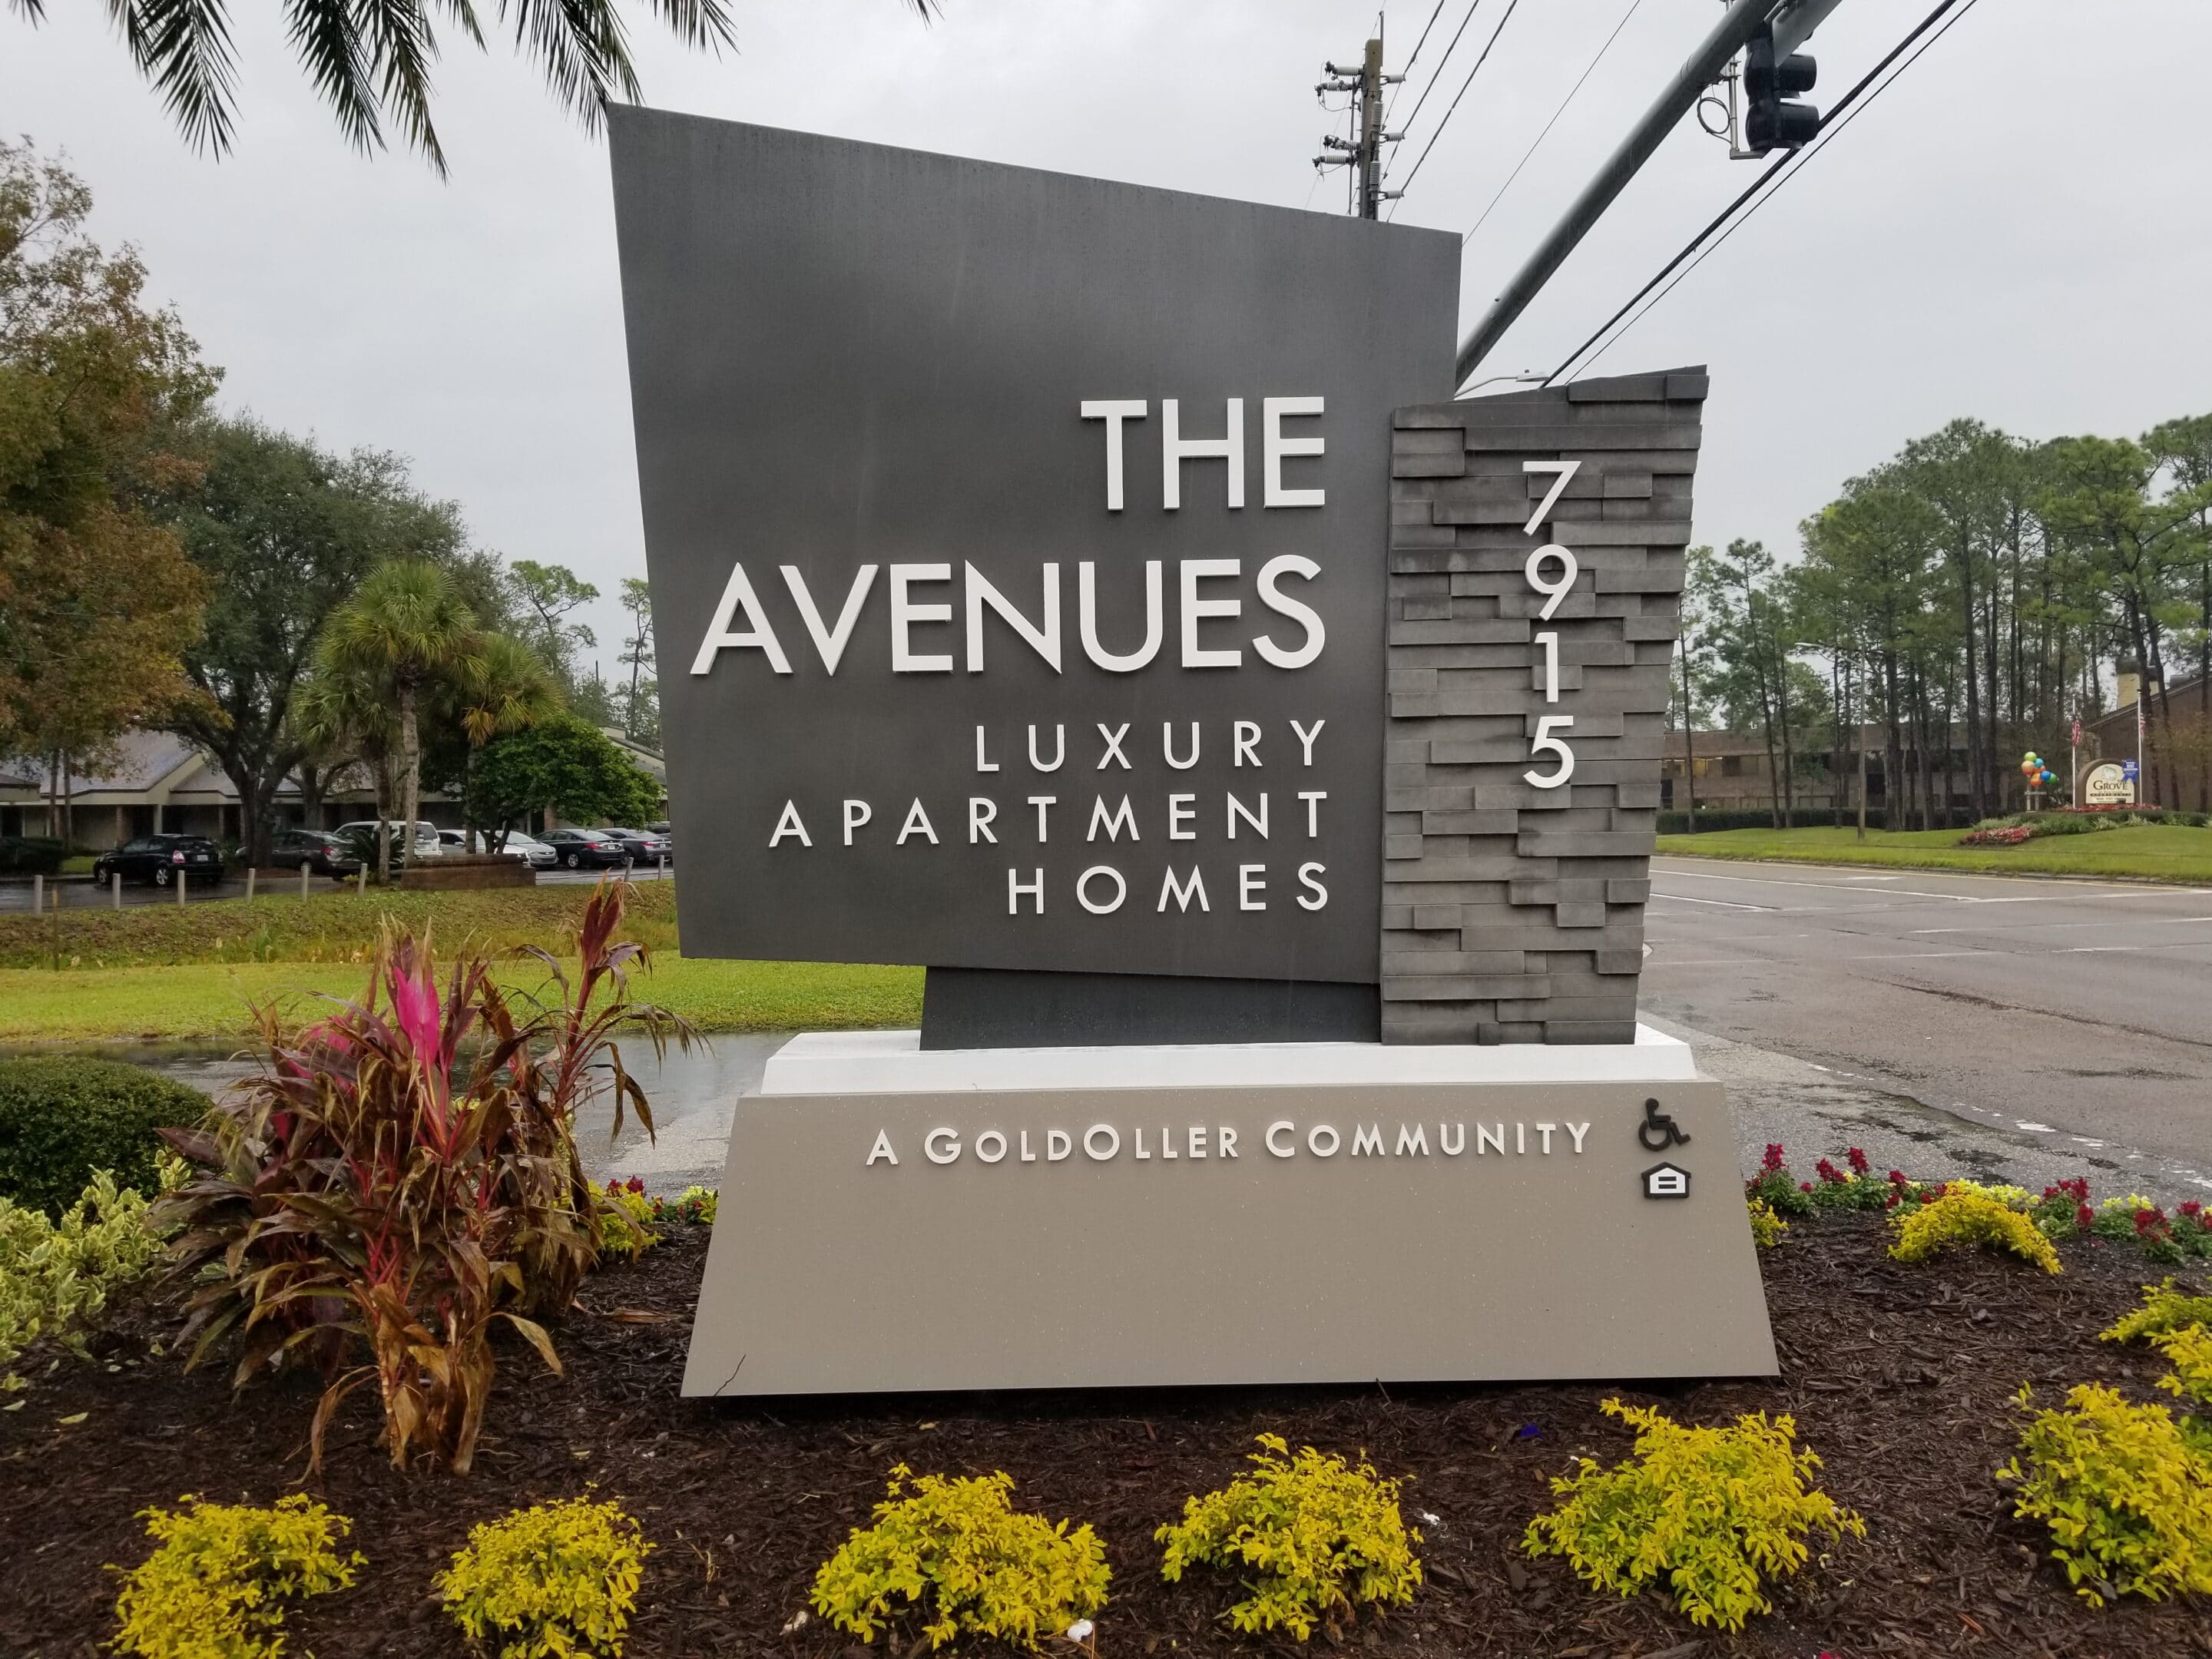 The Avenues Luxury Apartment Homes Monument Sign